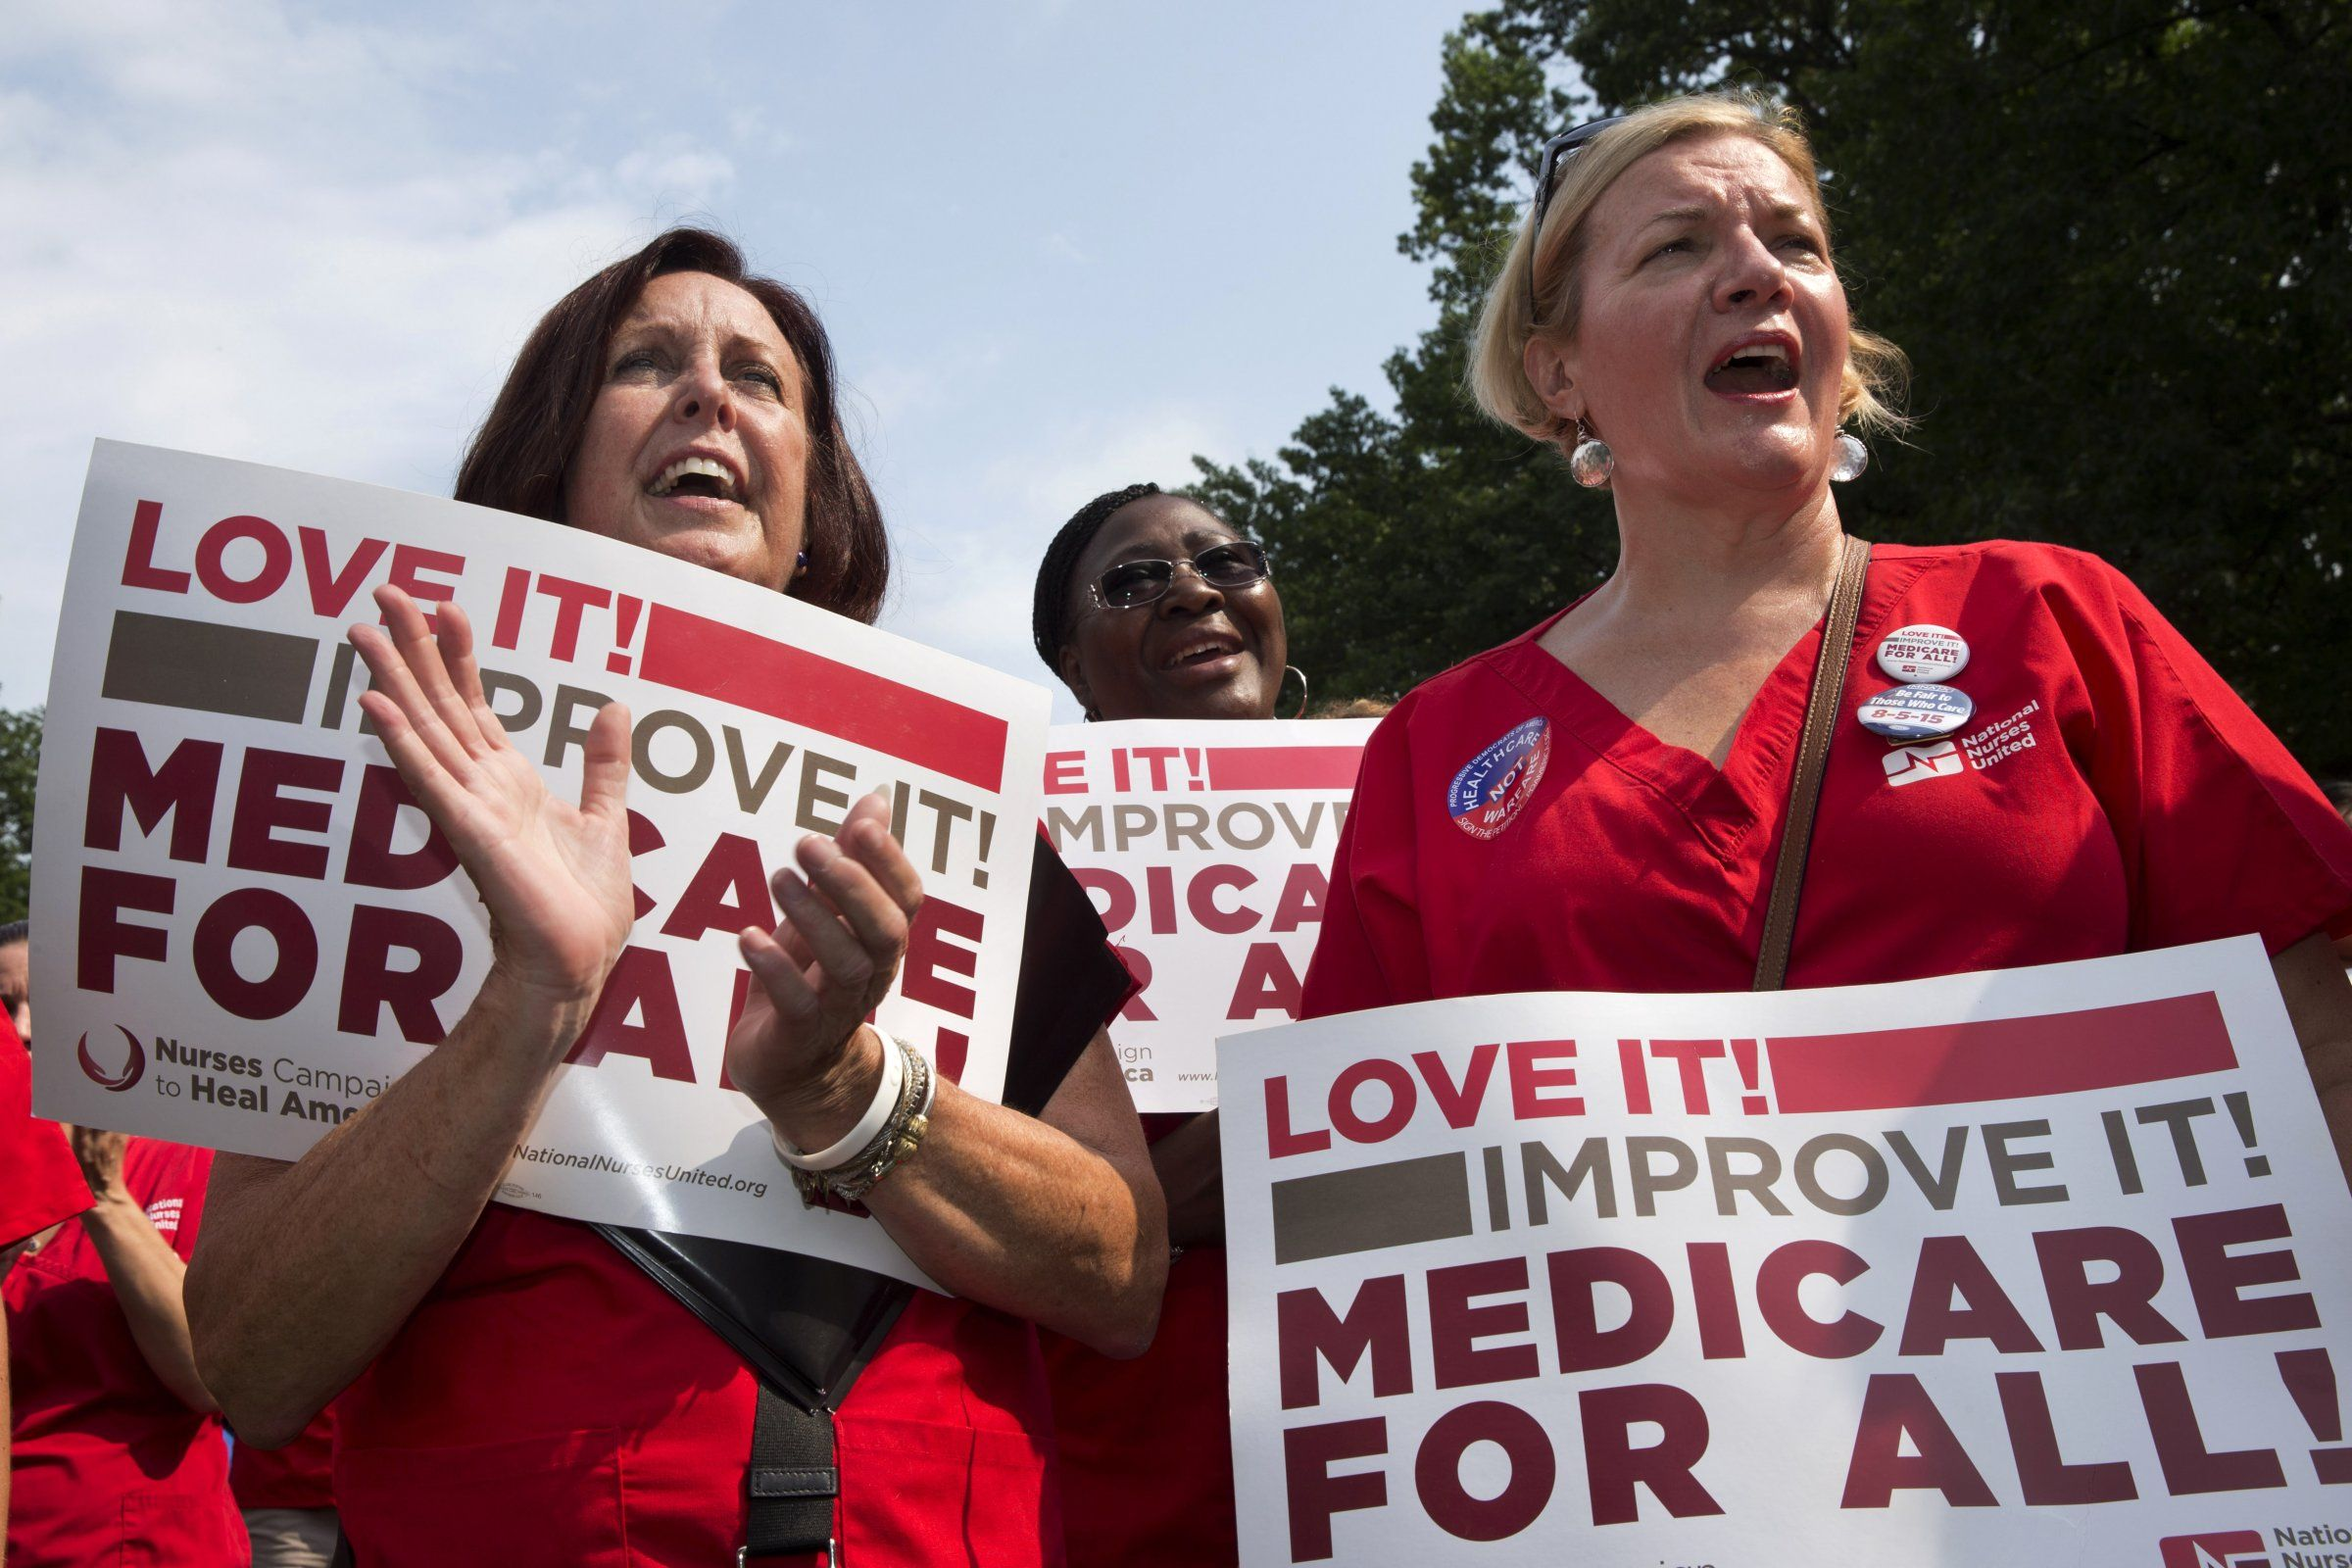 Obama's Medicare expansion is costing 49 more than